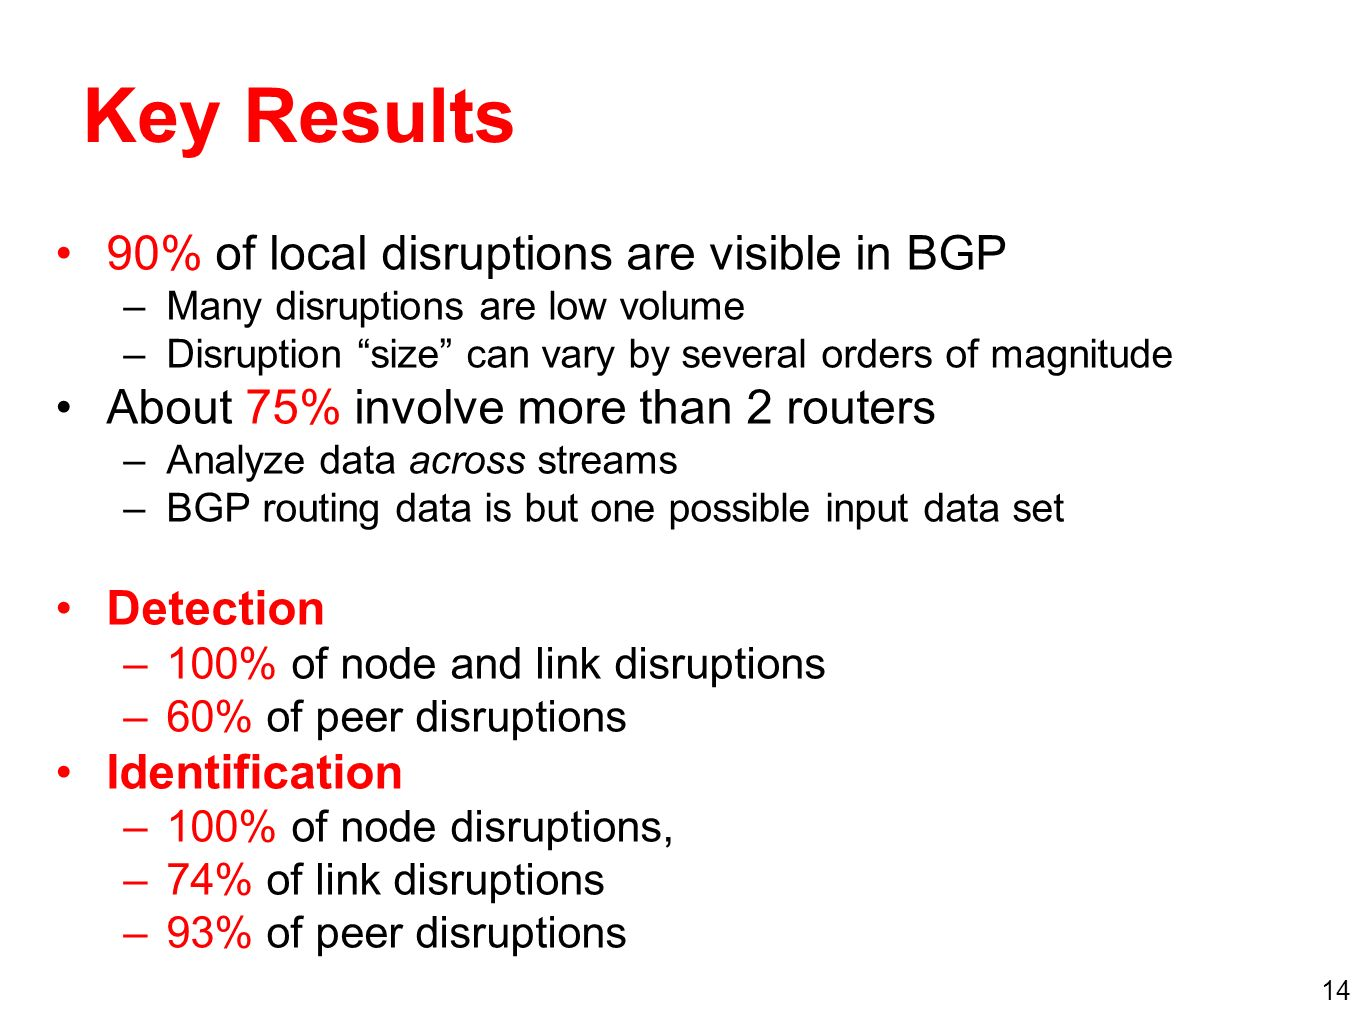 14 Key Results 90% of local disruptions are visible in BGP –Many disruptions are low volume –Disruption size can vary by several orders of magnitude About 75% involve more than 2 routers –Analyze data across streams –BGP routing data is but one possible input data set Detection –100% of node and link disruptions –60% of peer disruptions Identification –100% of node disruptions, –74% of link disruptions –93% of peer disruptions